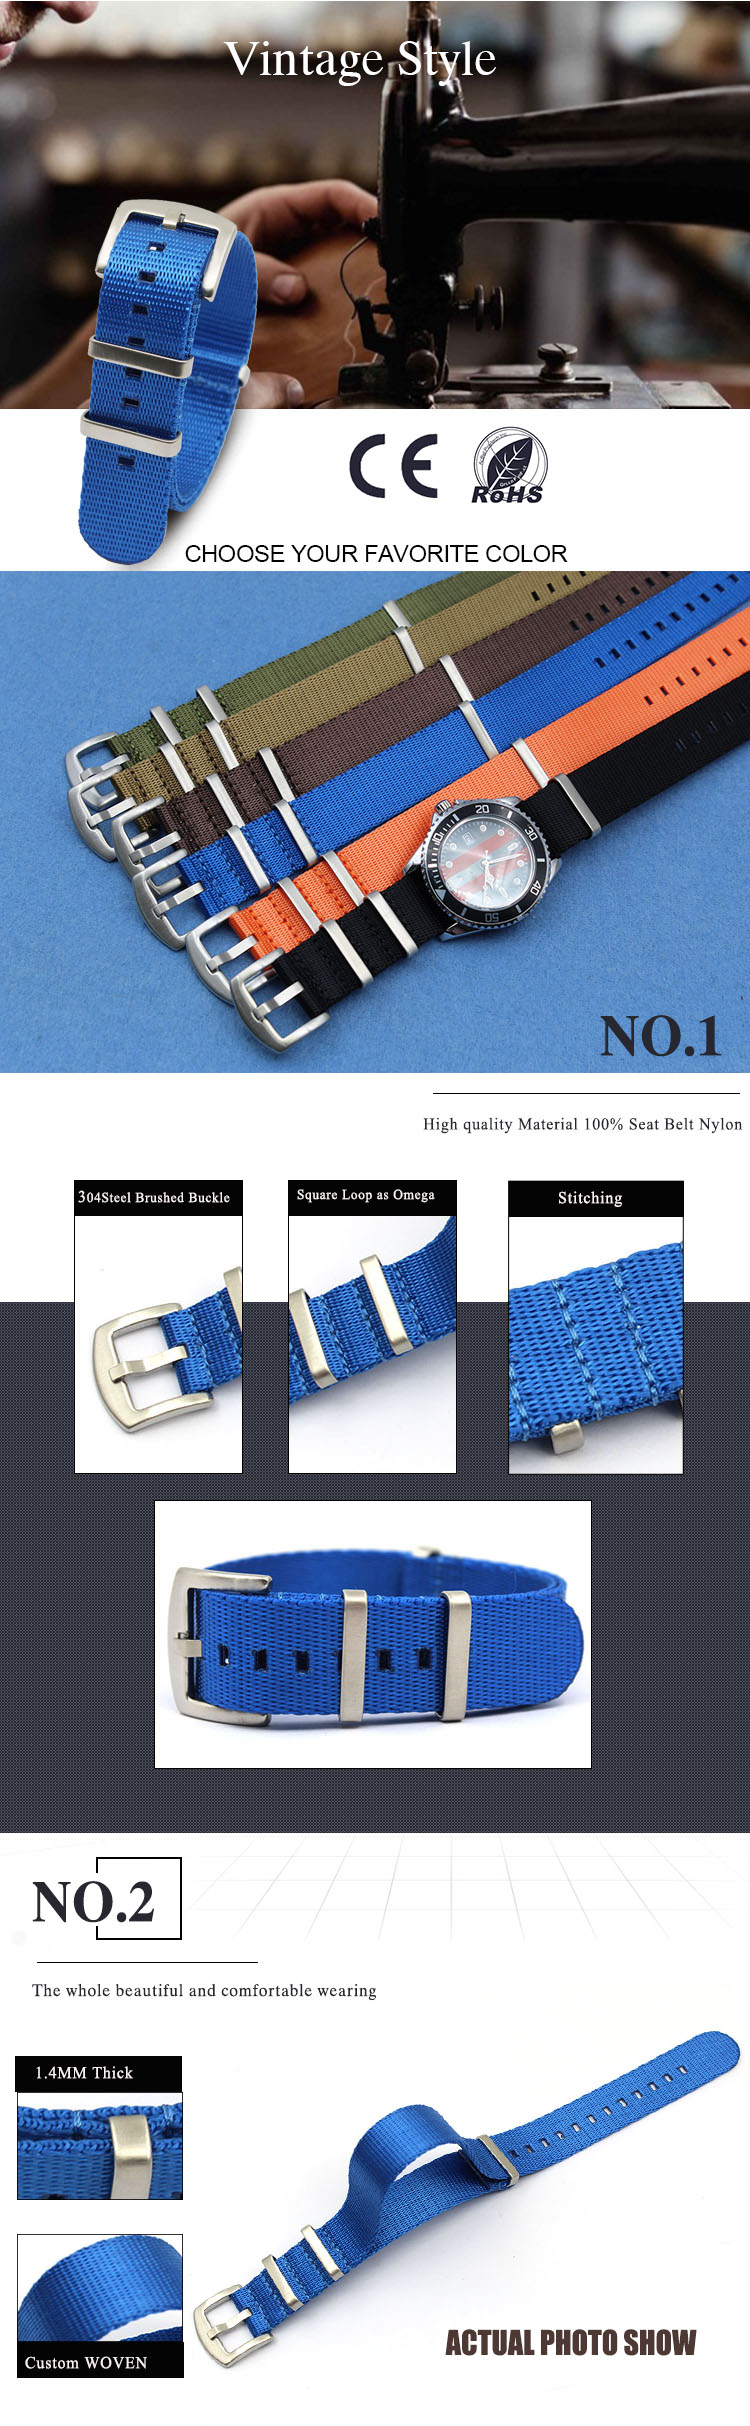 Seatbelt blue nato strap nylon